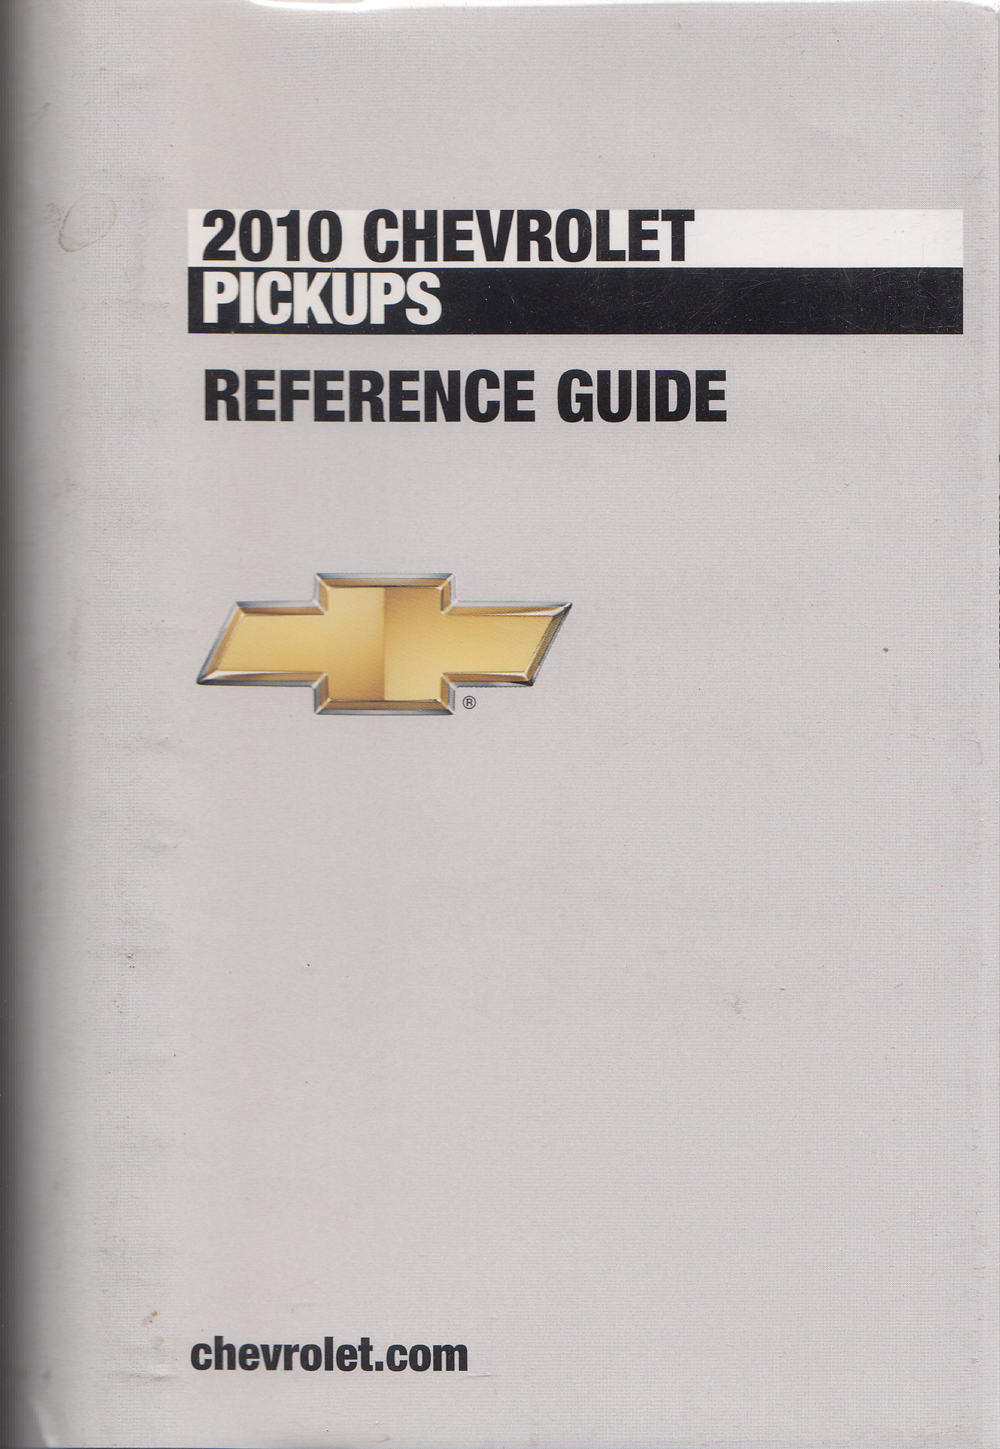 2010 Chevrolet Pickup Data Book with Color & Upholstery Original